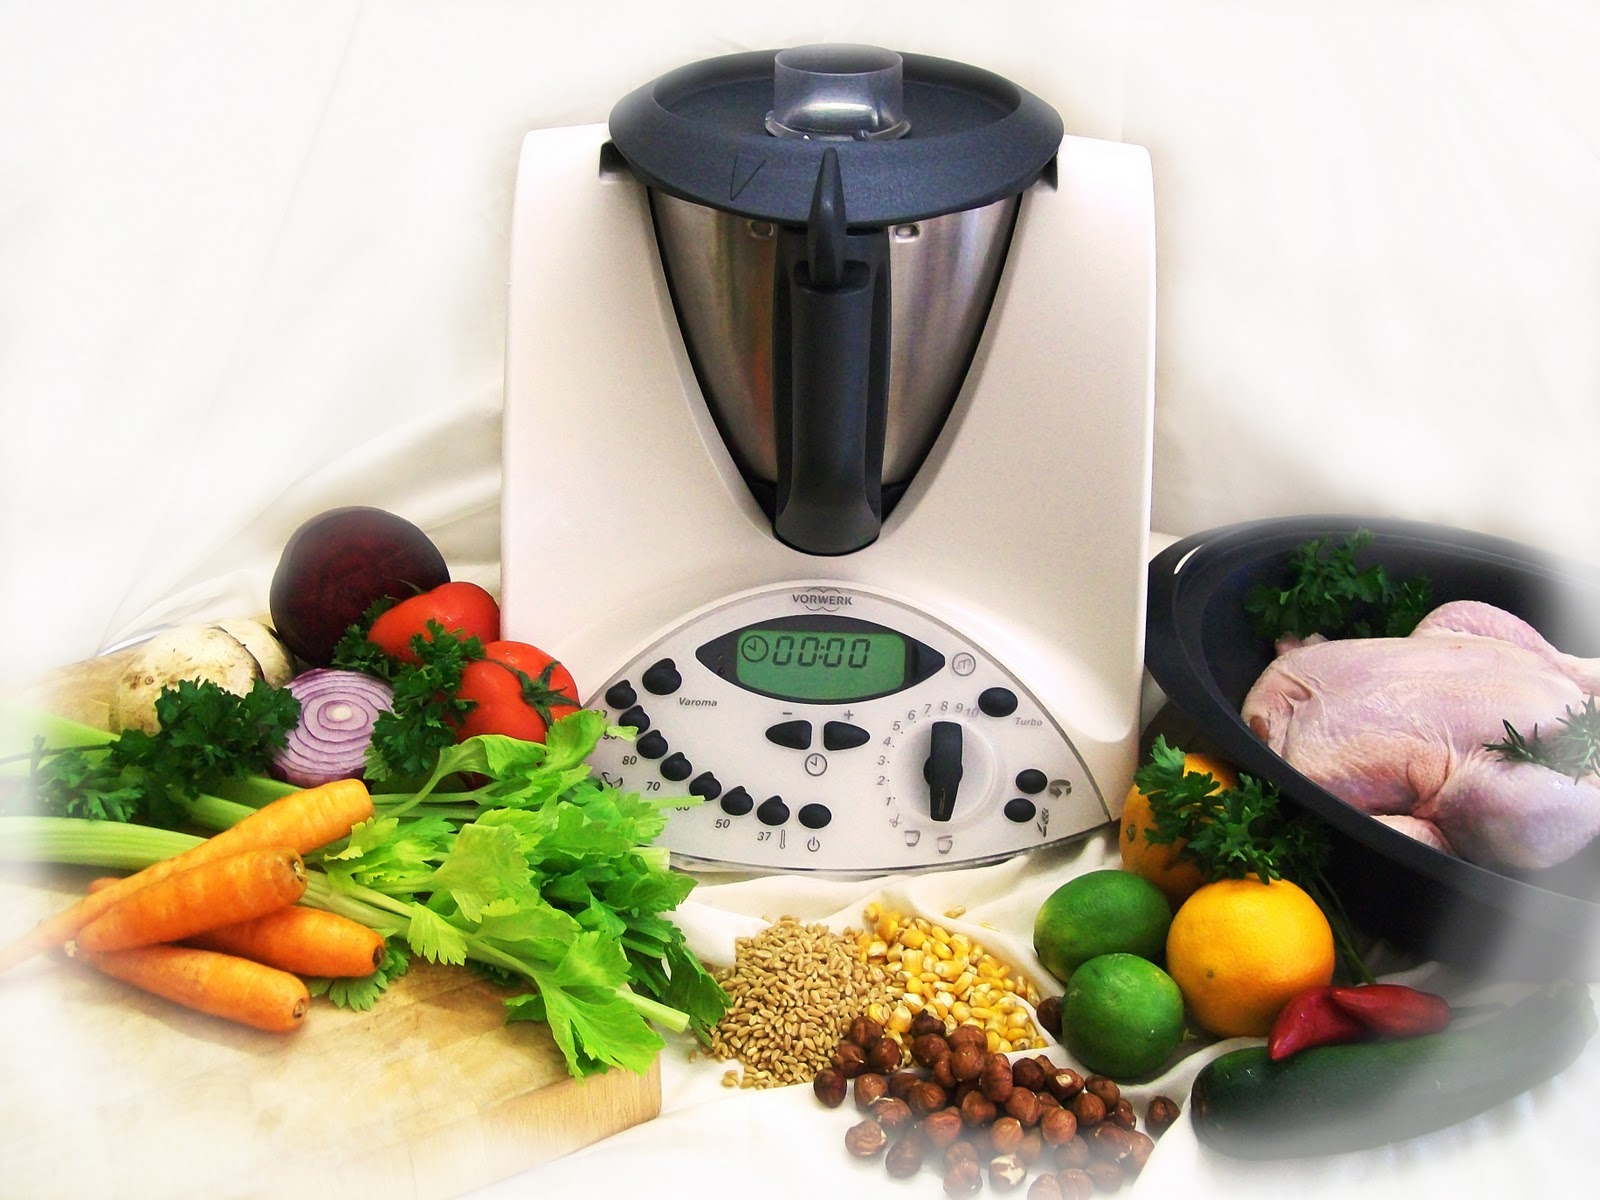 Should you buy a Thermomix?